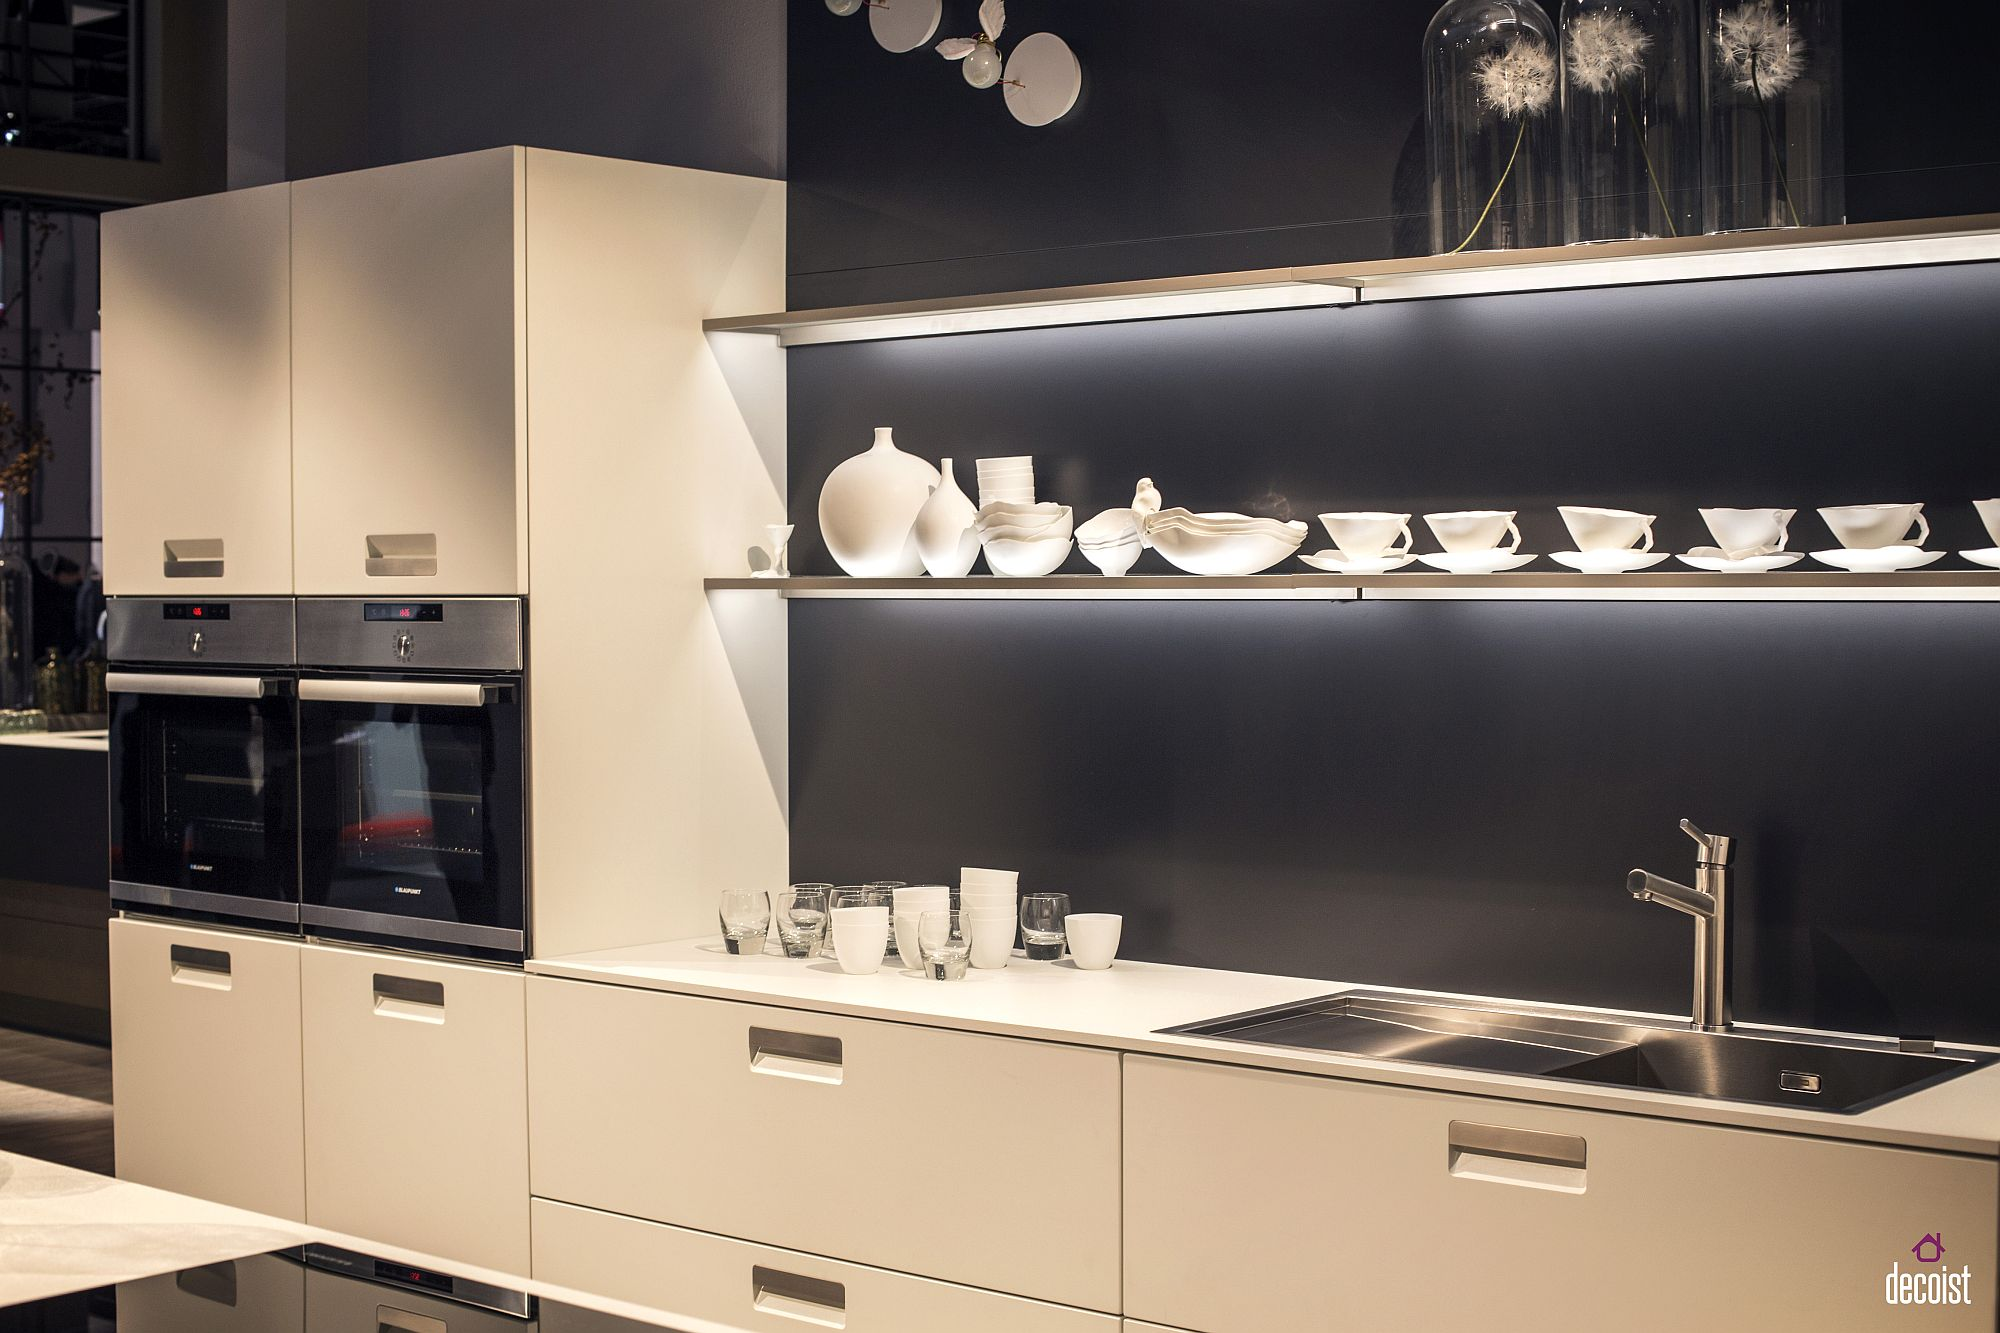 White kitchen cabinets, floating shelves with LED strip lighting and gray background